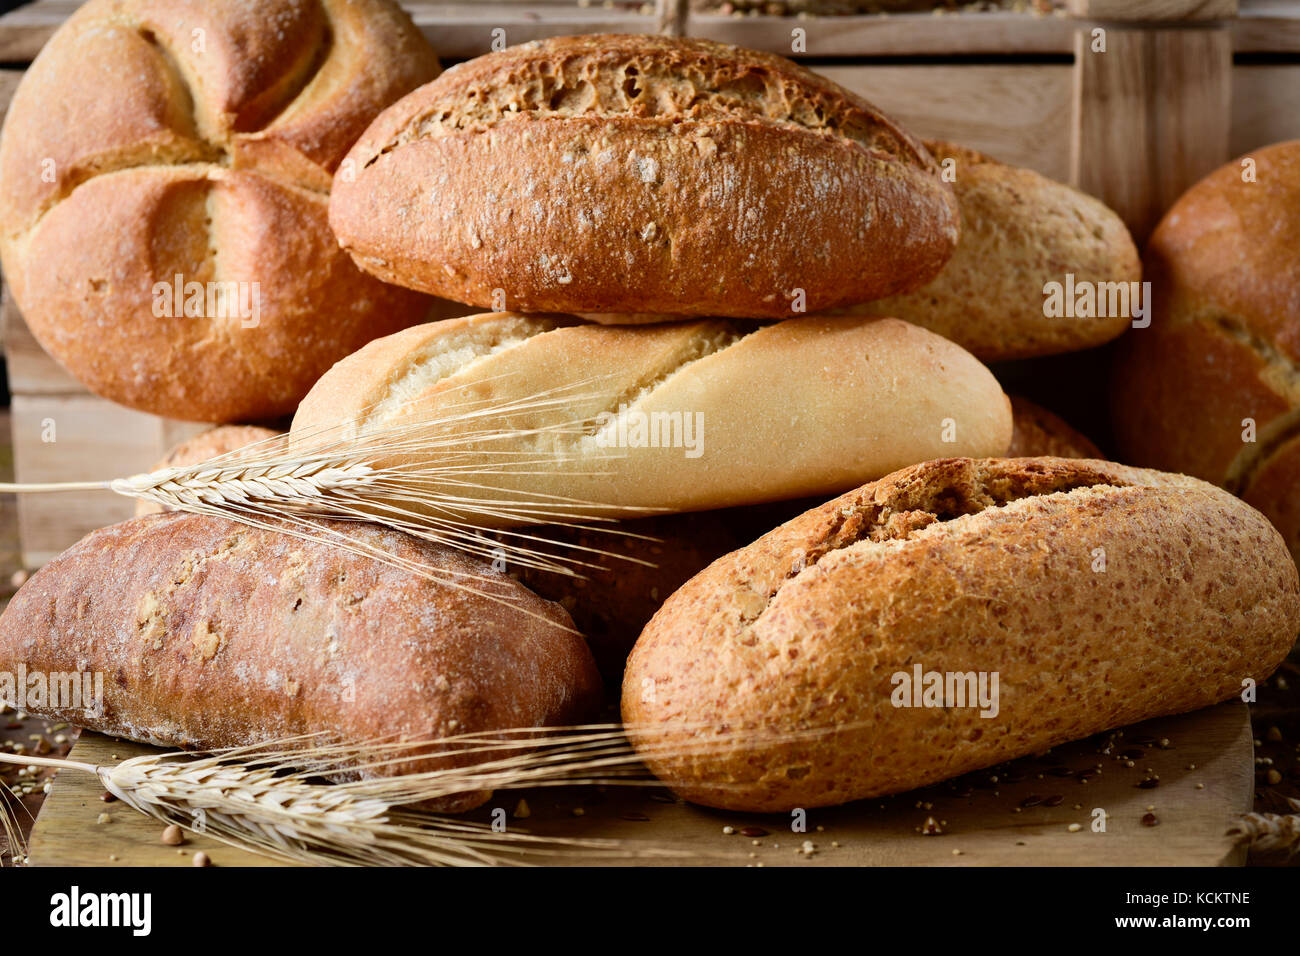 closeup of an assortment of different bread rolls and some wheat ears on a rustic wooden table - Stock Image